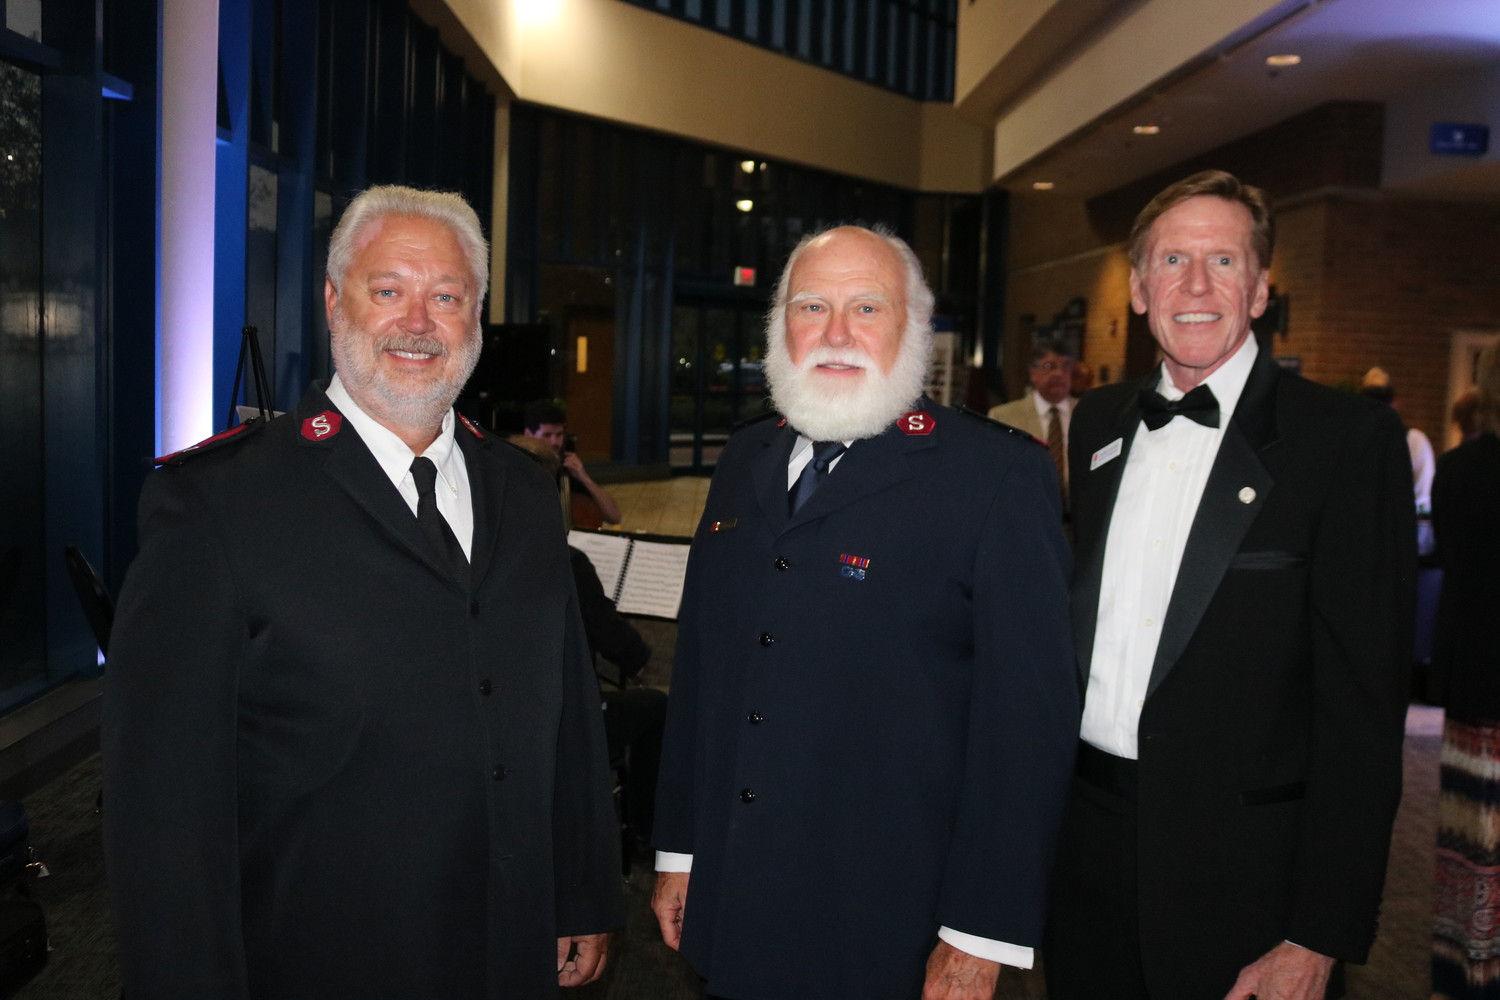 Major Tim Williford, Major Bert Tanner and Robert Devers of the Salvation Army